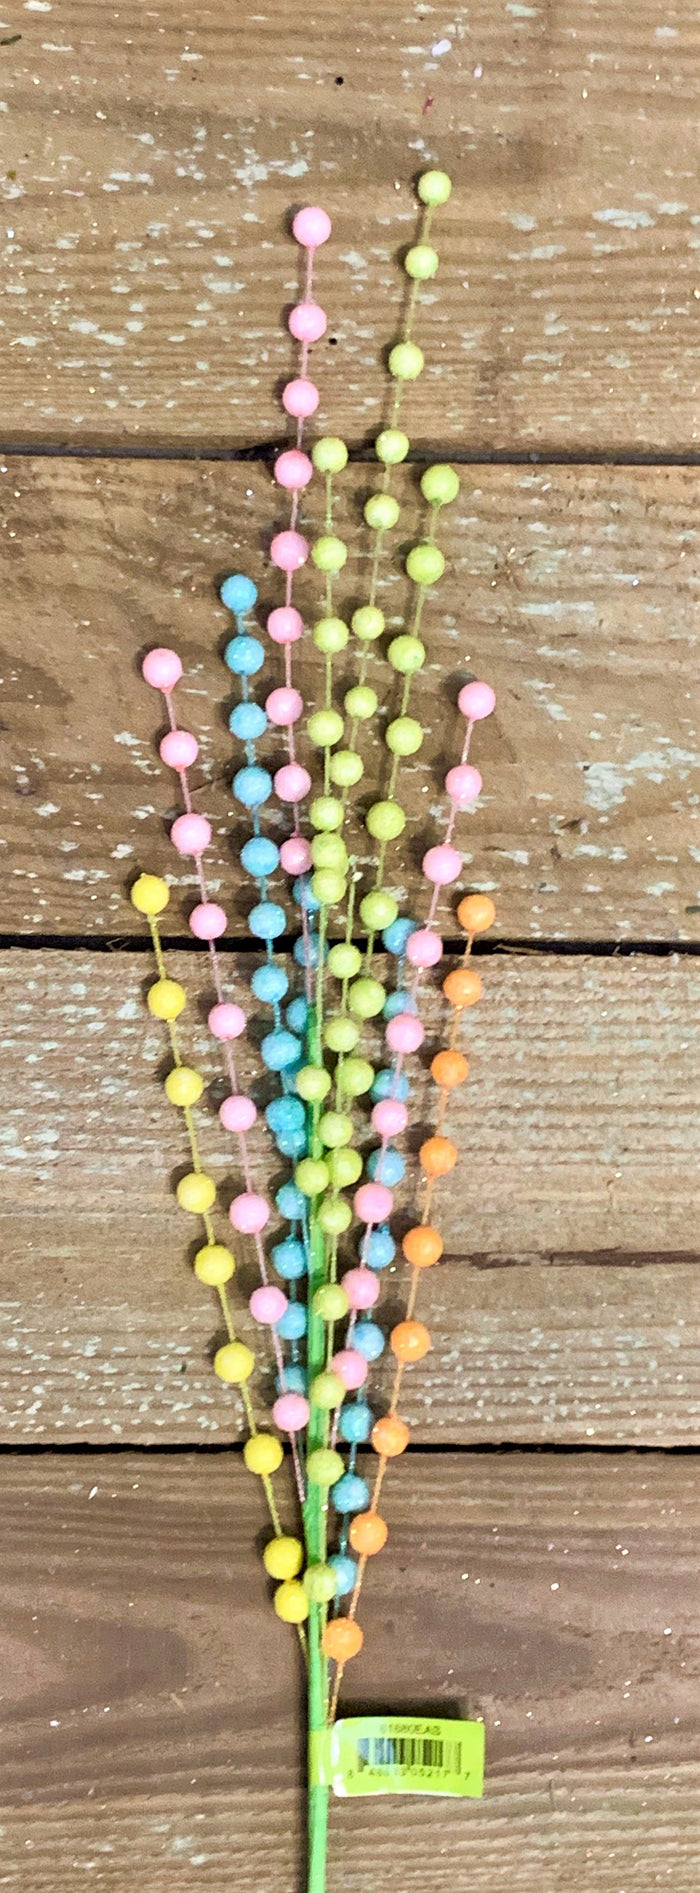 Spring Pastels Small Foam Beads Mix Spray